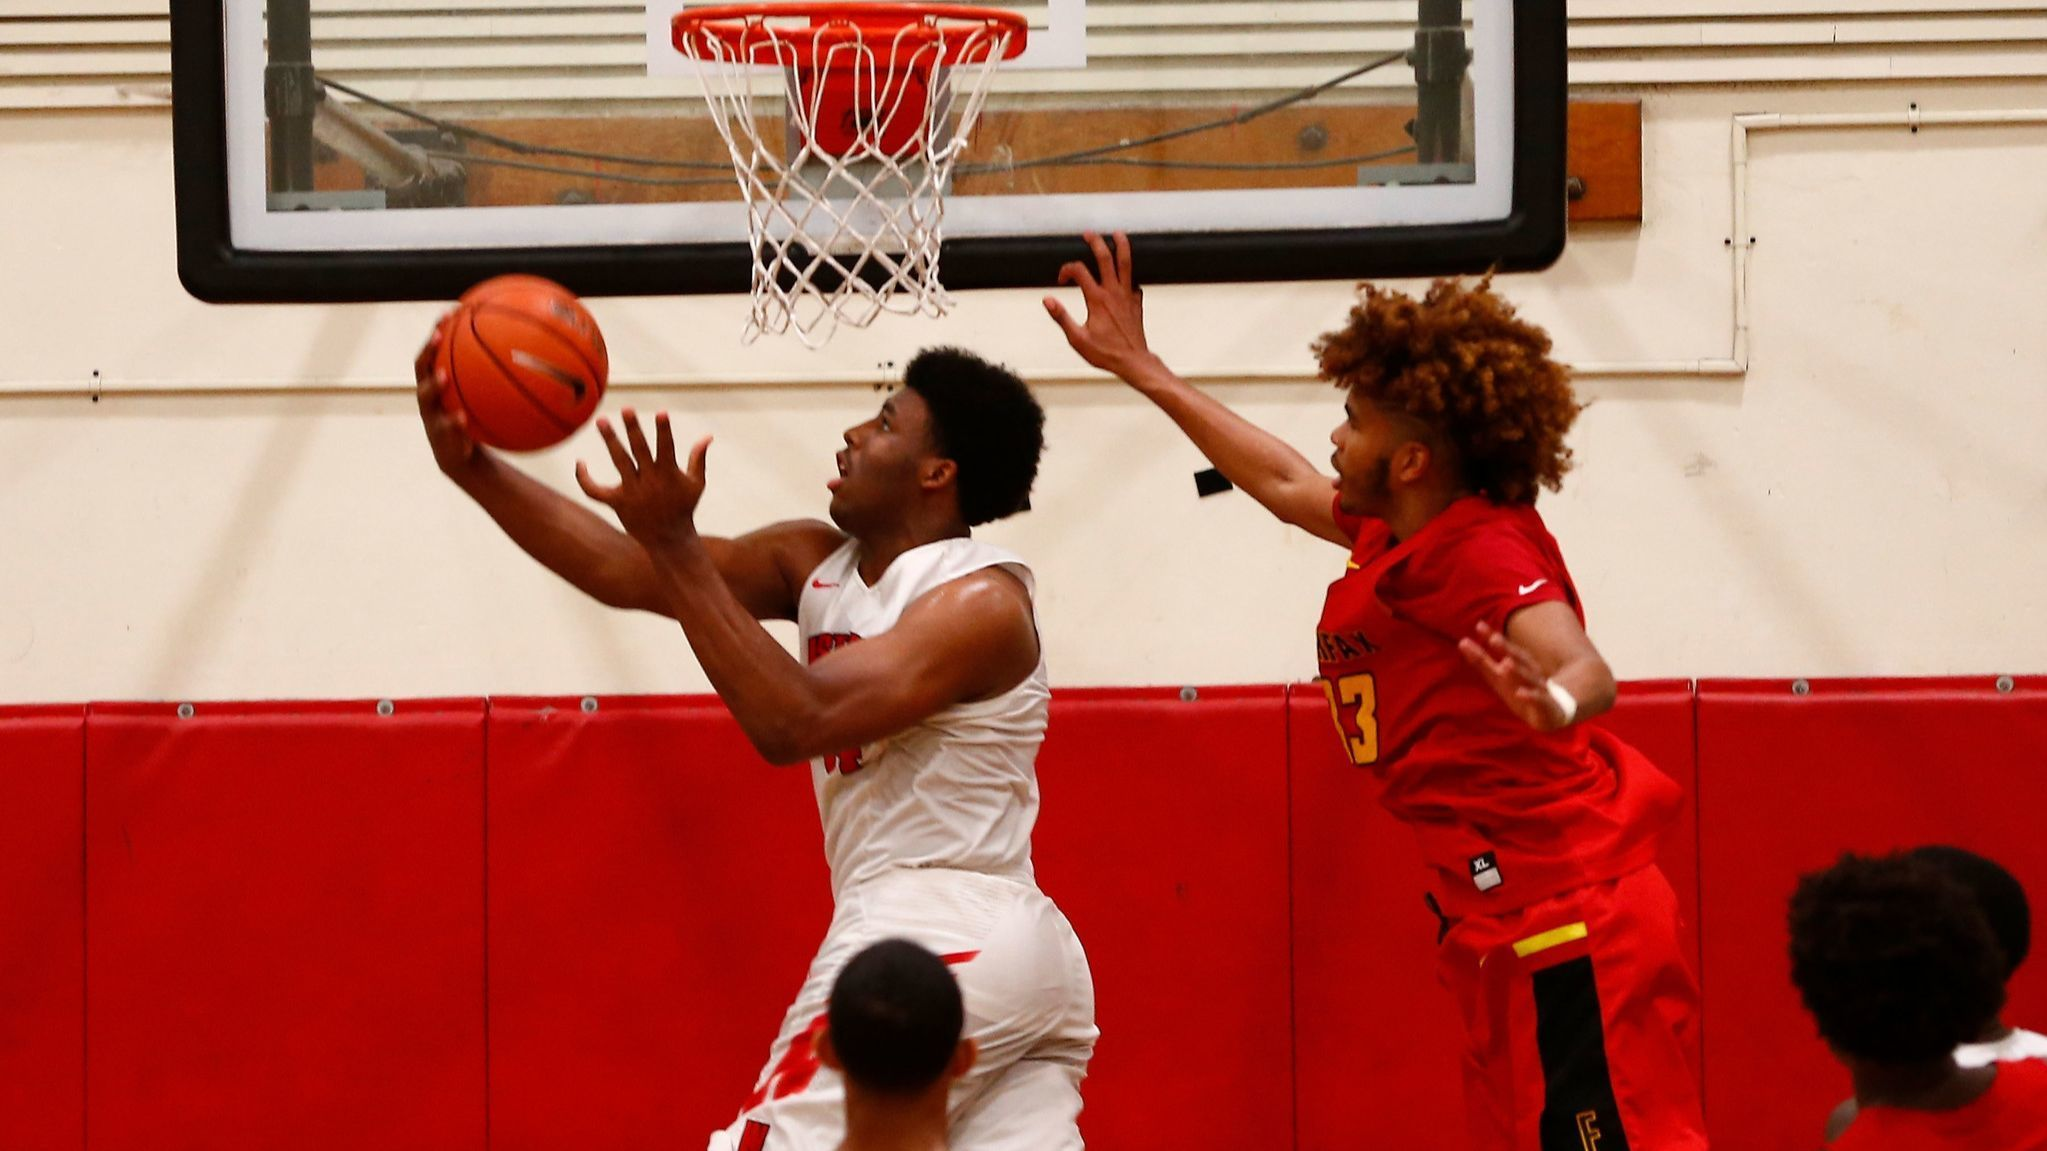 City Section boys' basketball teams ready to challenge the best in California